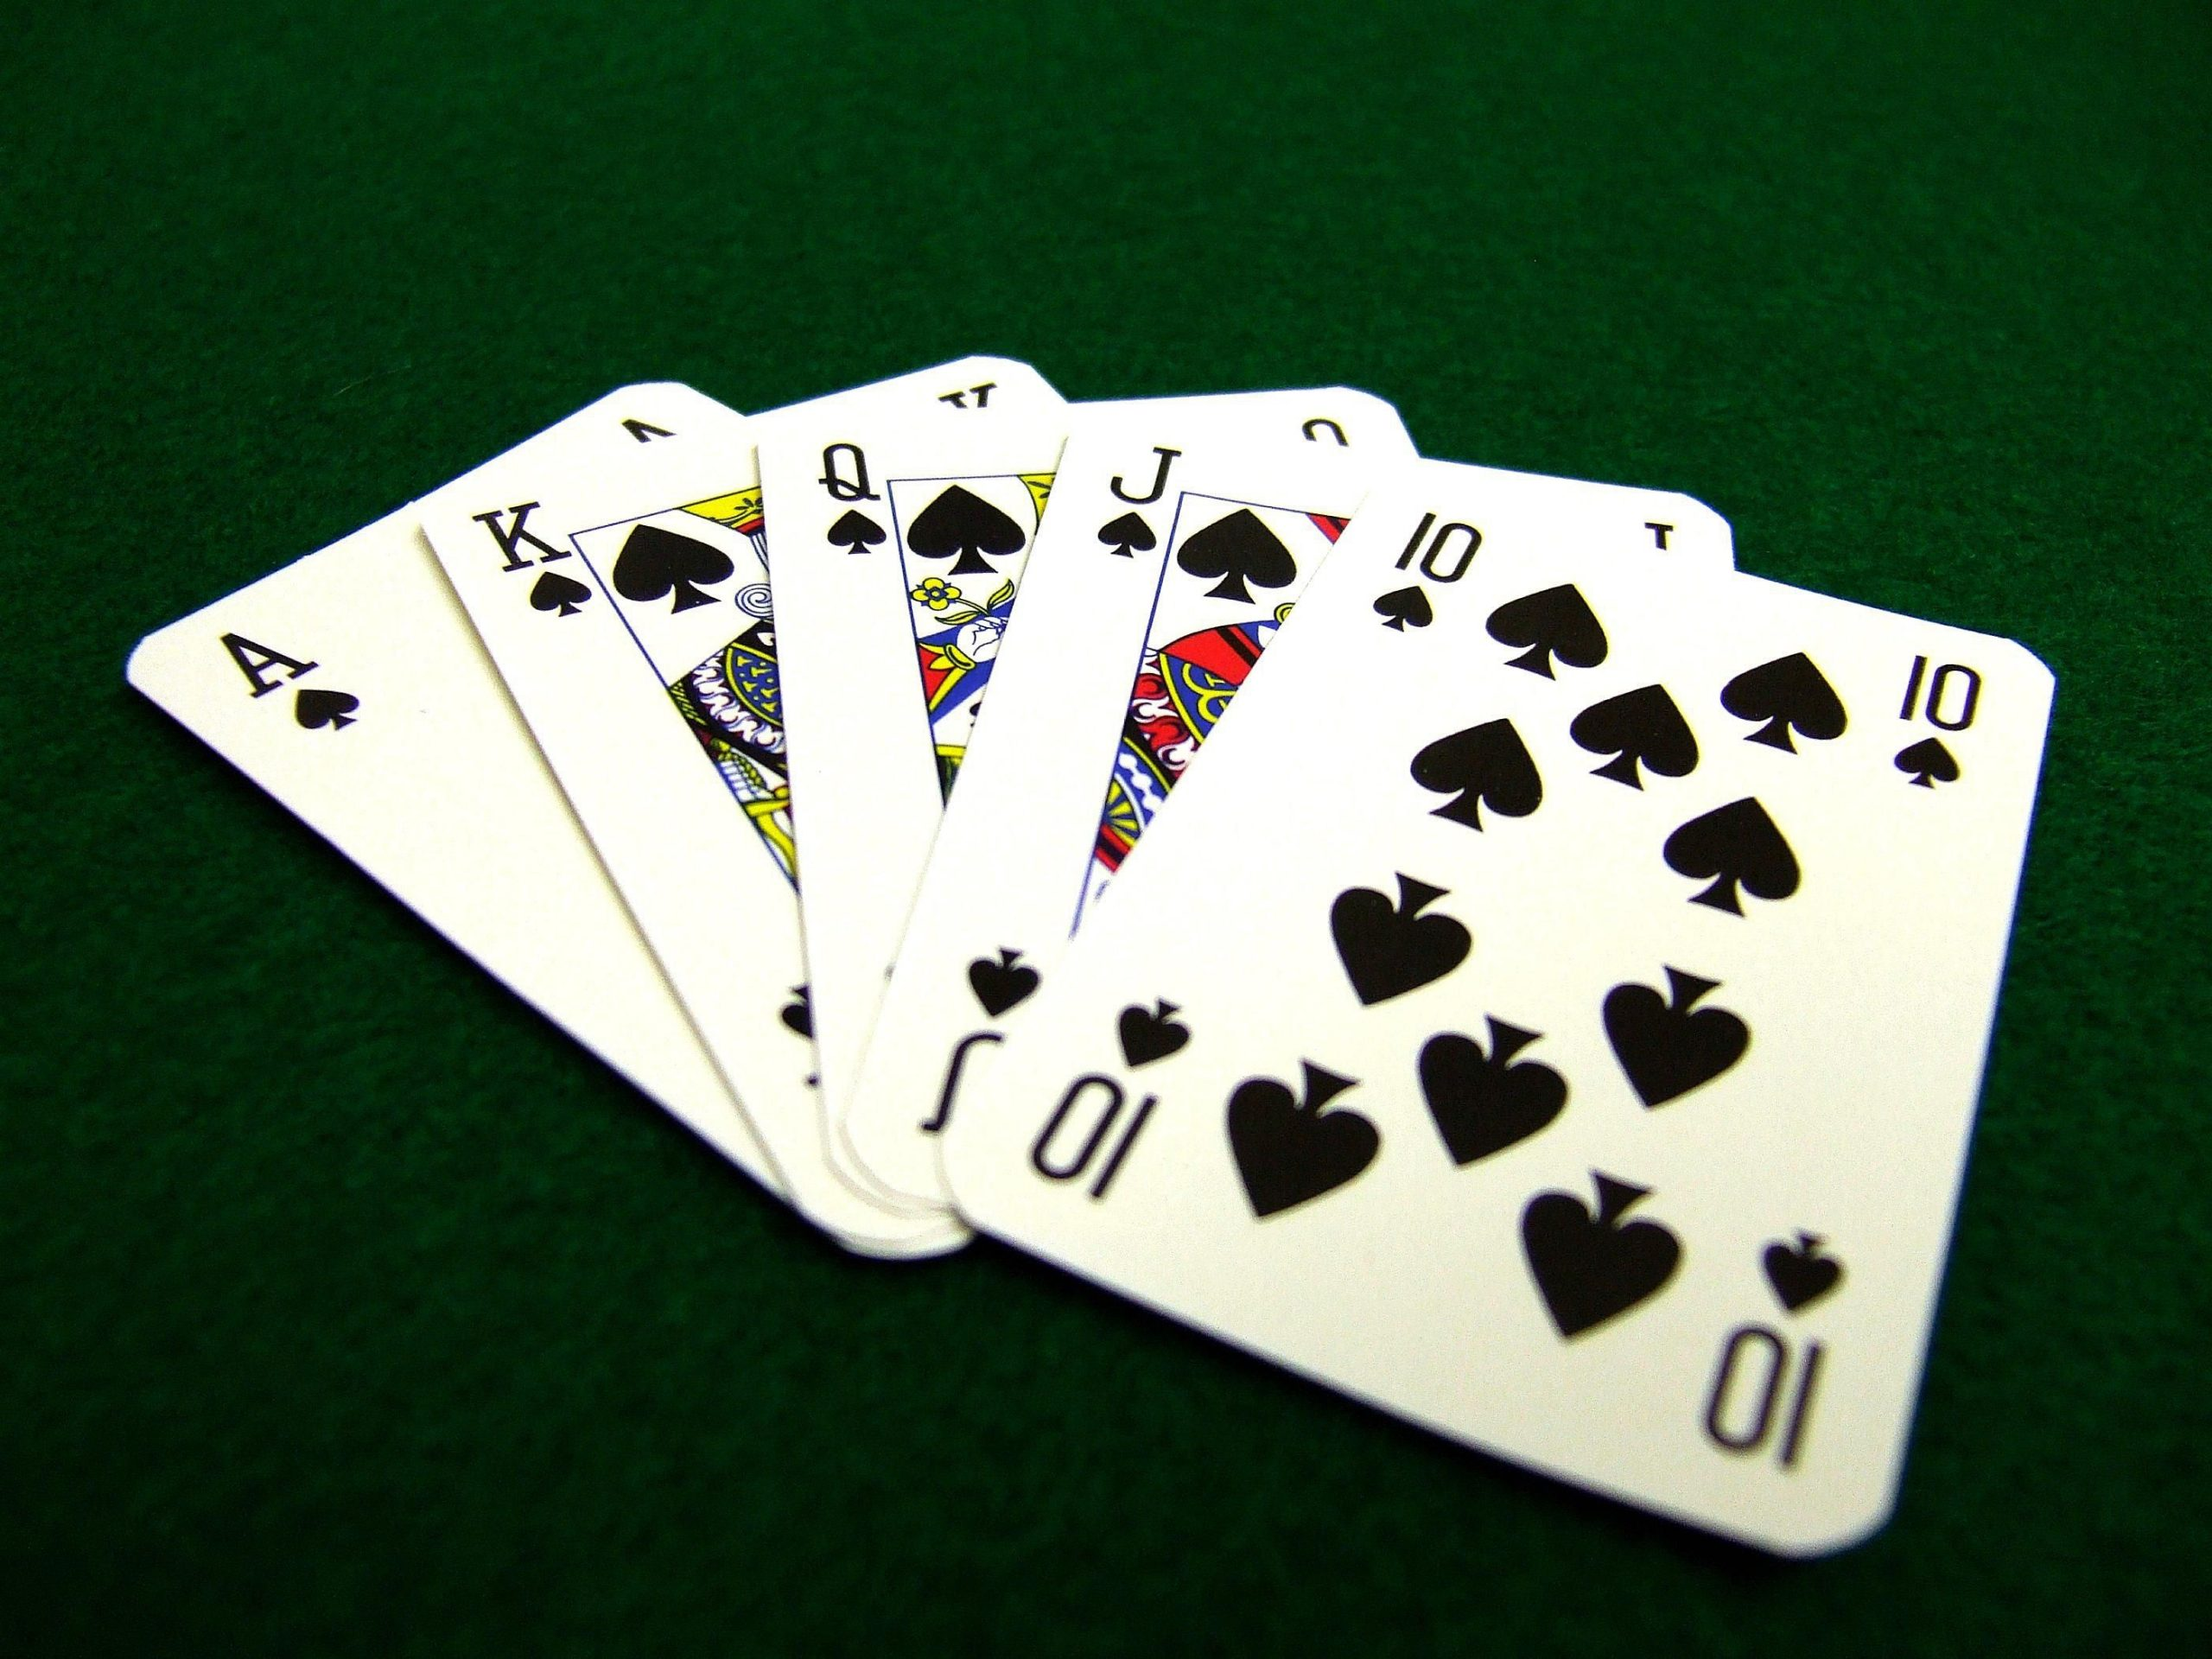 Man Dies After Getting Bashed Following Dispute Over Playing Cards